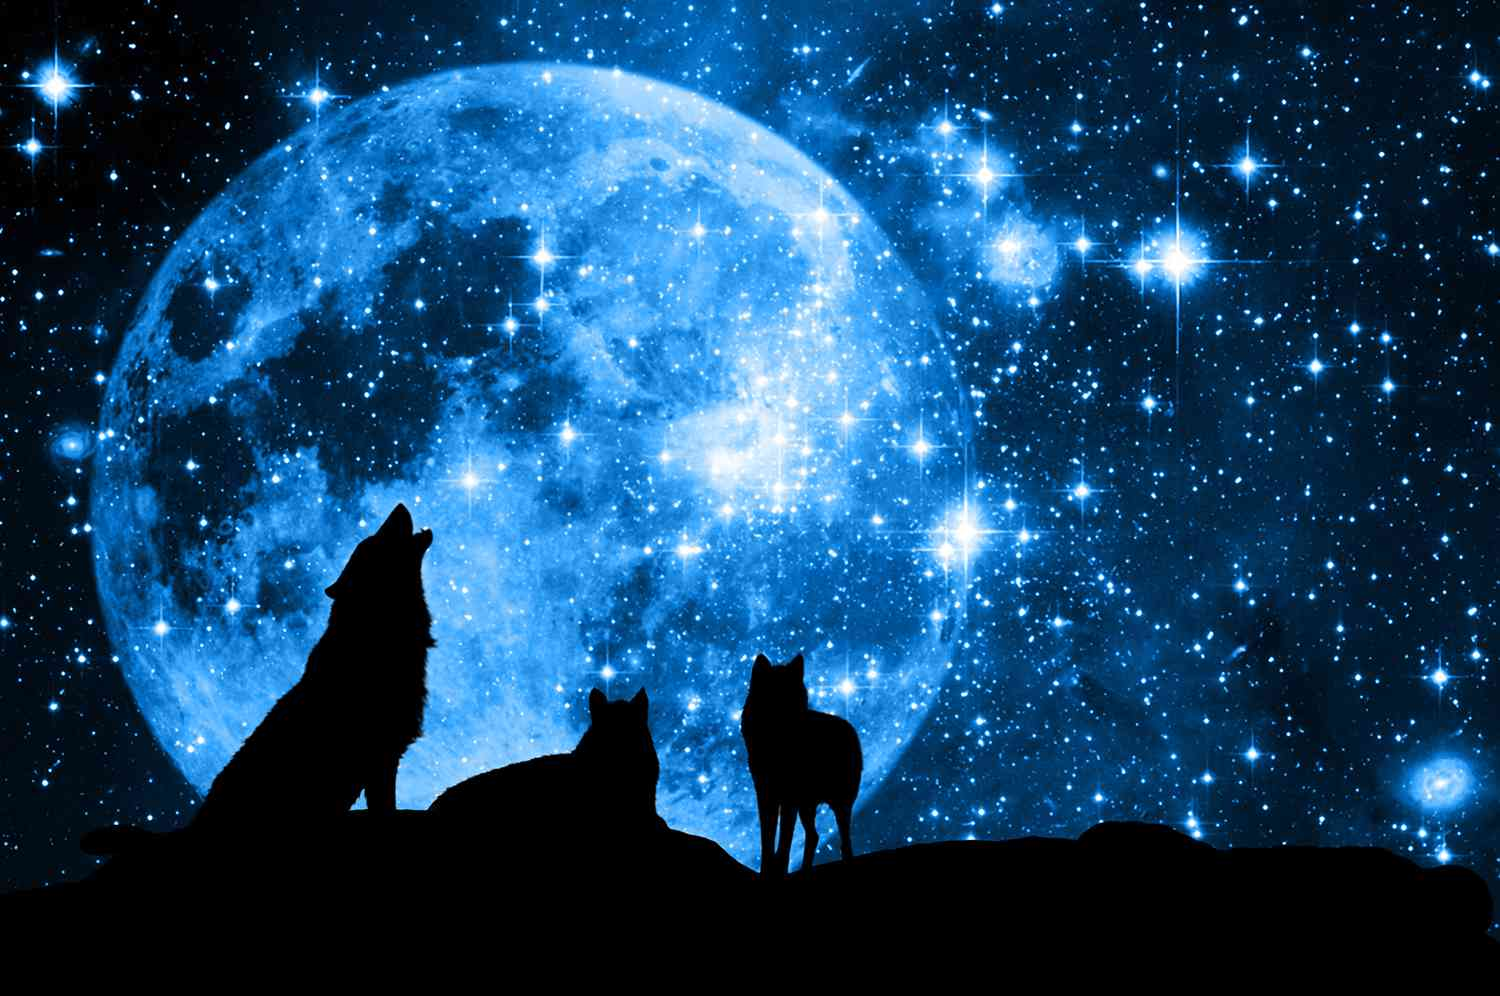 A Story of Two Wolves